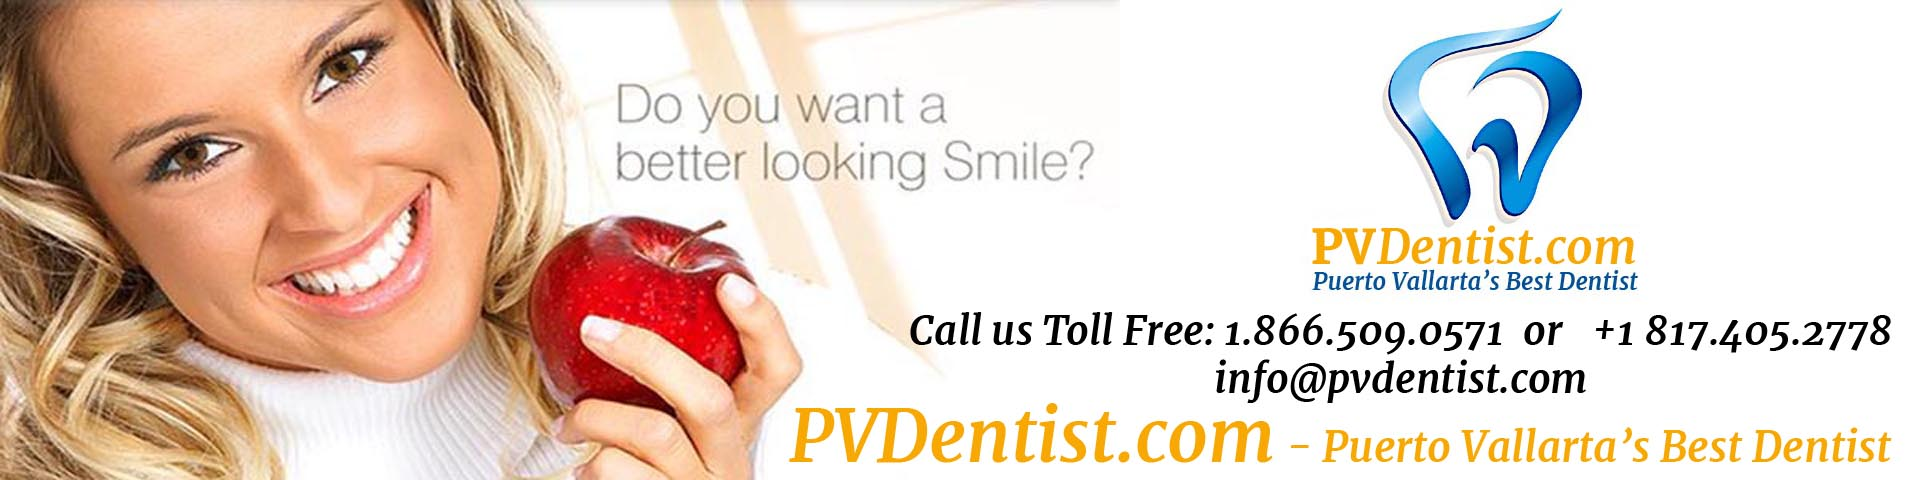 PV Dentist – Puerto Vallarta's Best Dentist